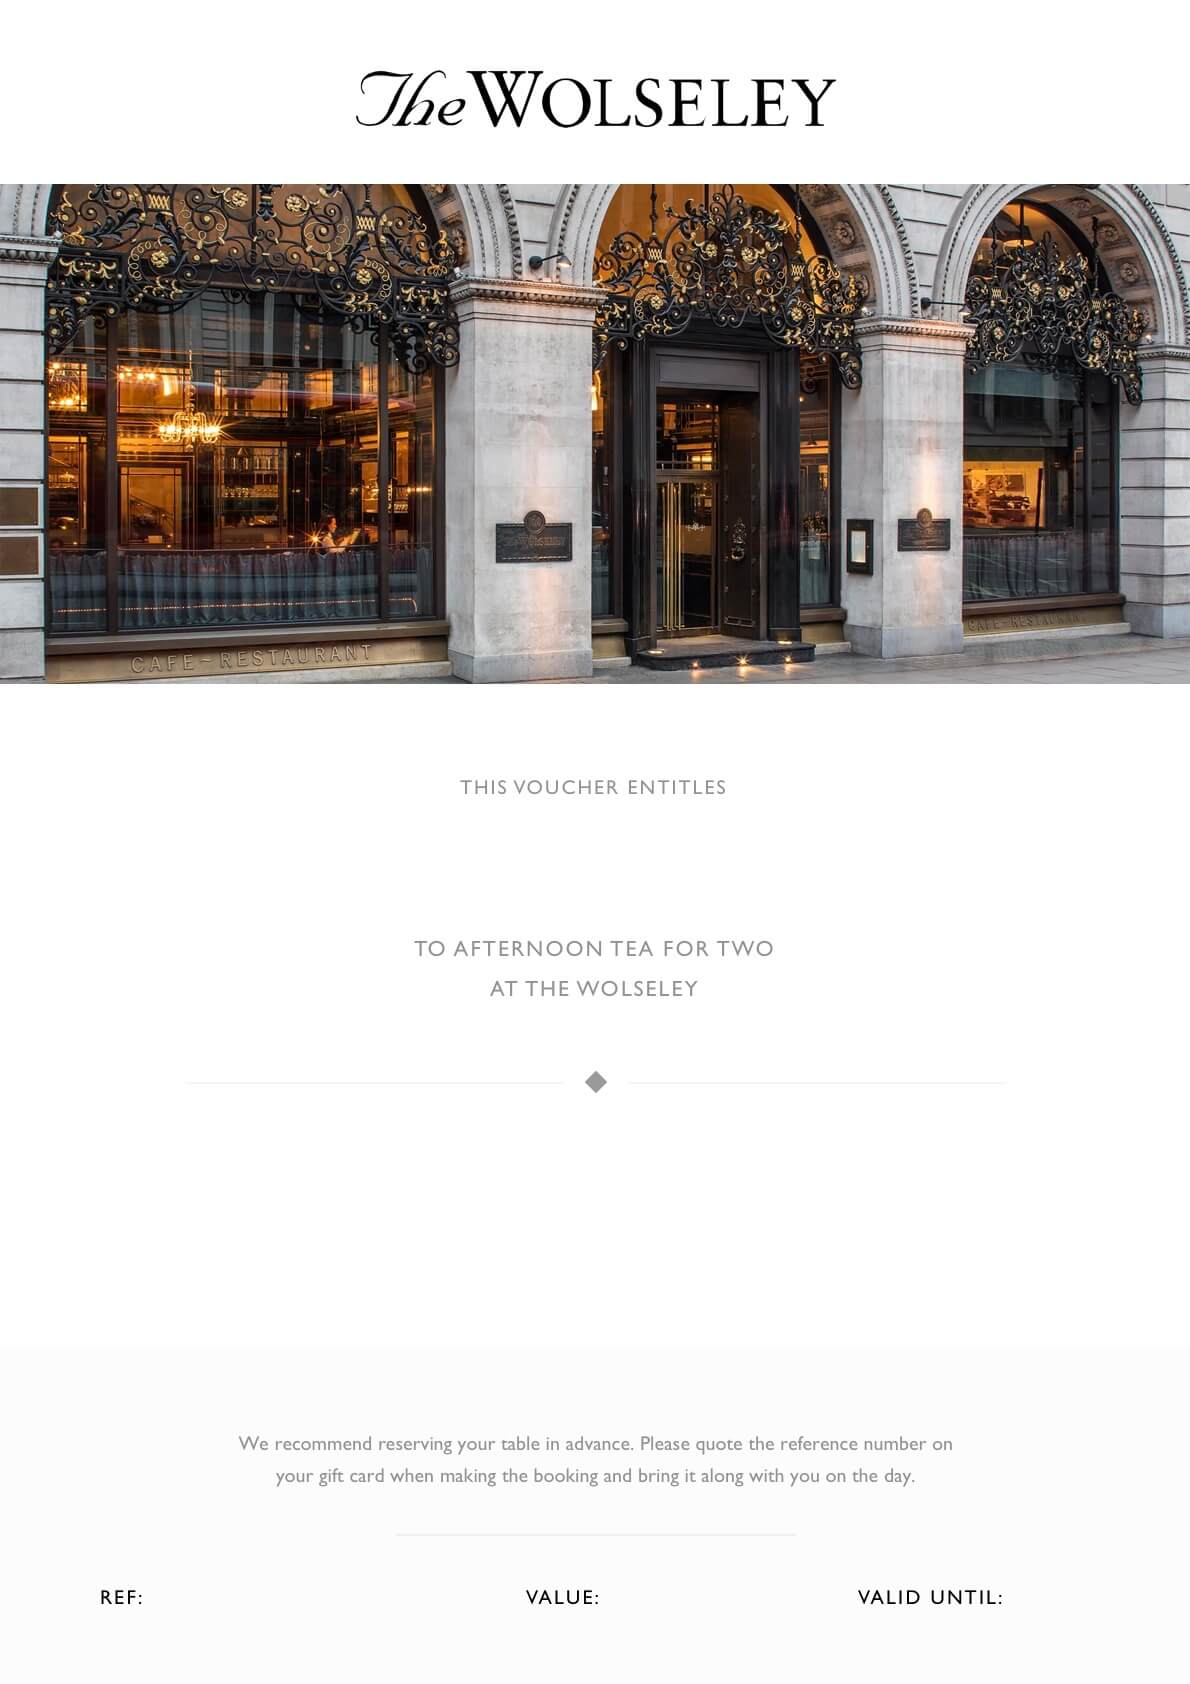 Afternoon Tea For Two At The Wolseley Gift Card The Wolseley